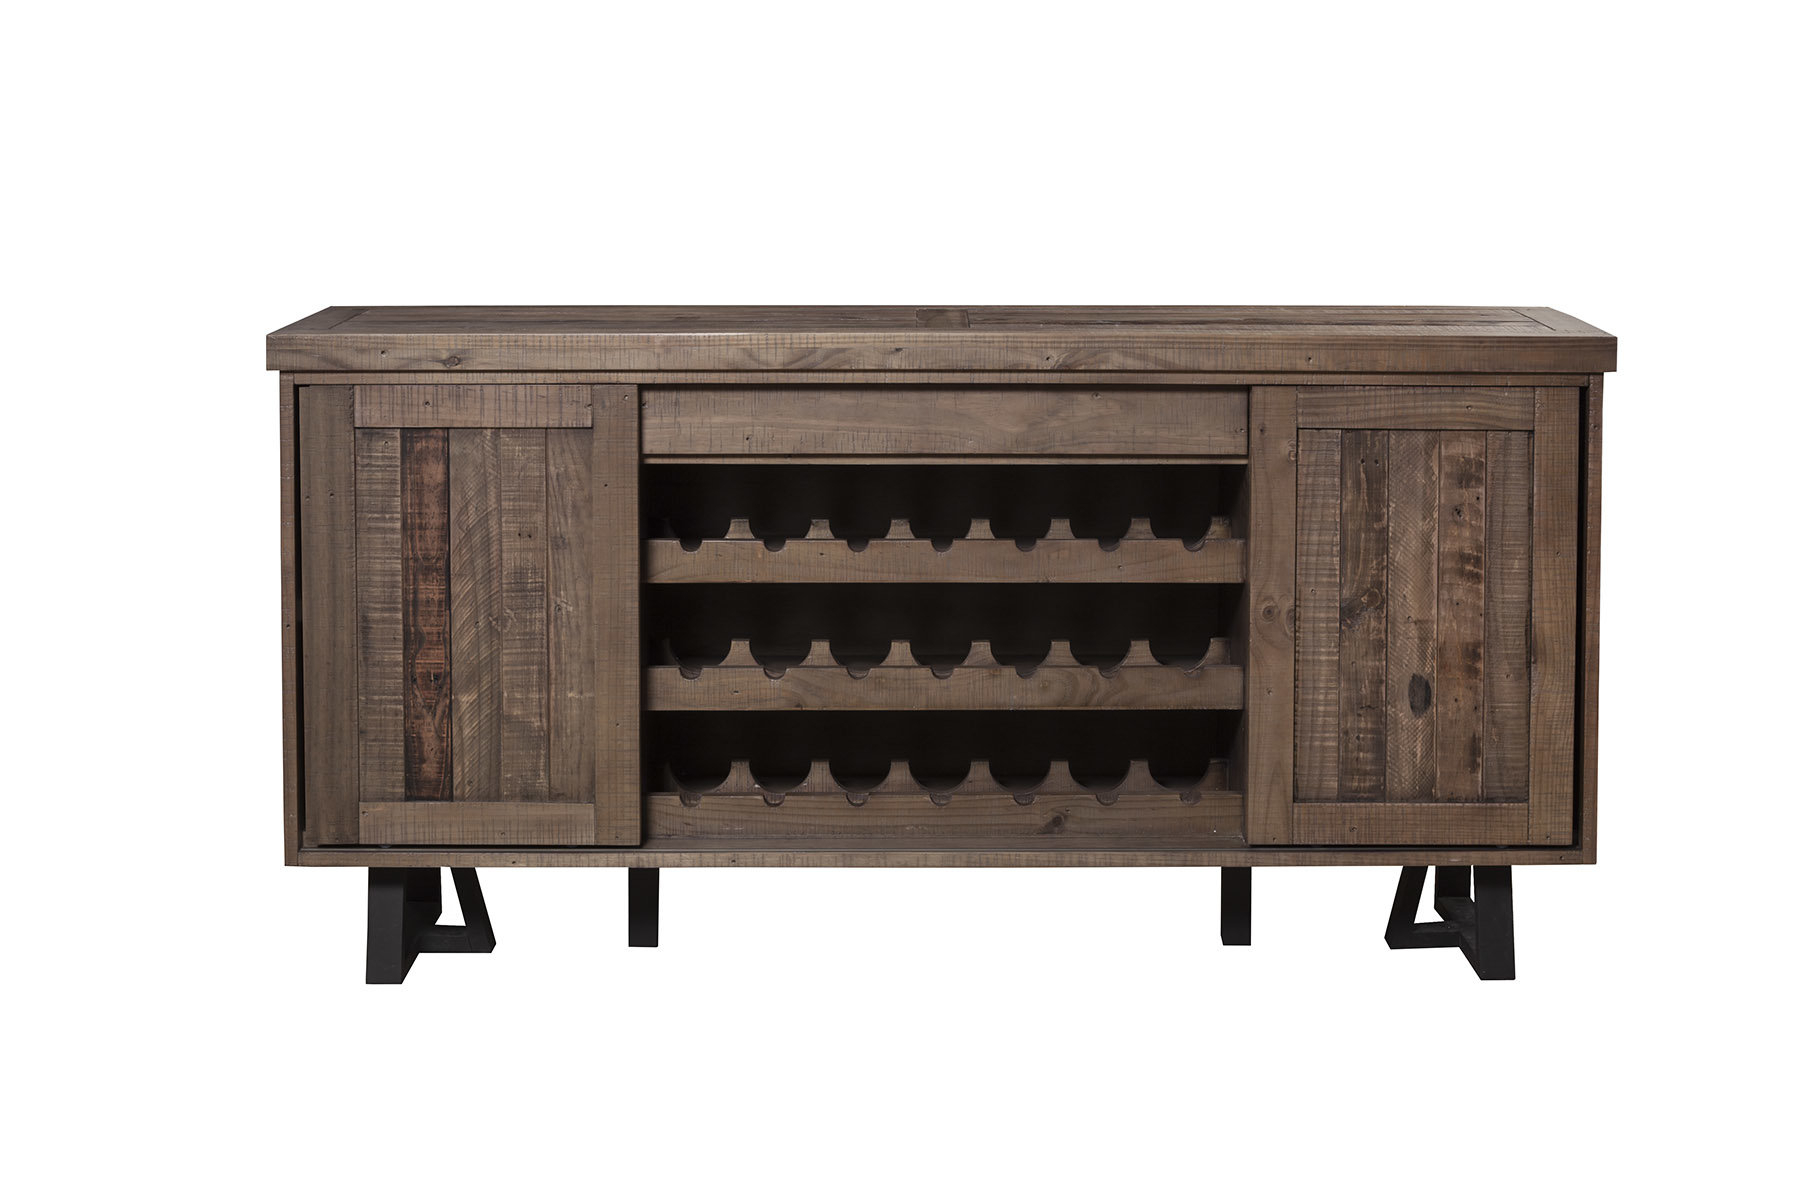 Farmhouse & Rustic Solid Wood Sideboards & Buffets | Birch Lane with regard to Solid And Composite Wood Buffets In Cappuccino Finish (Image 6 of 30)